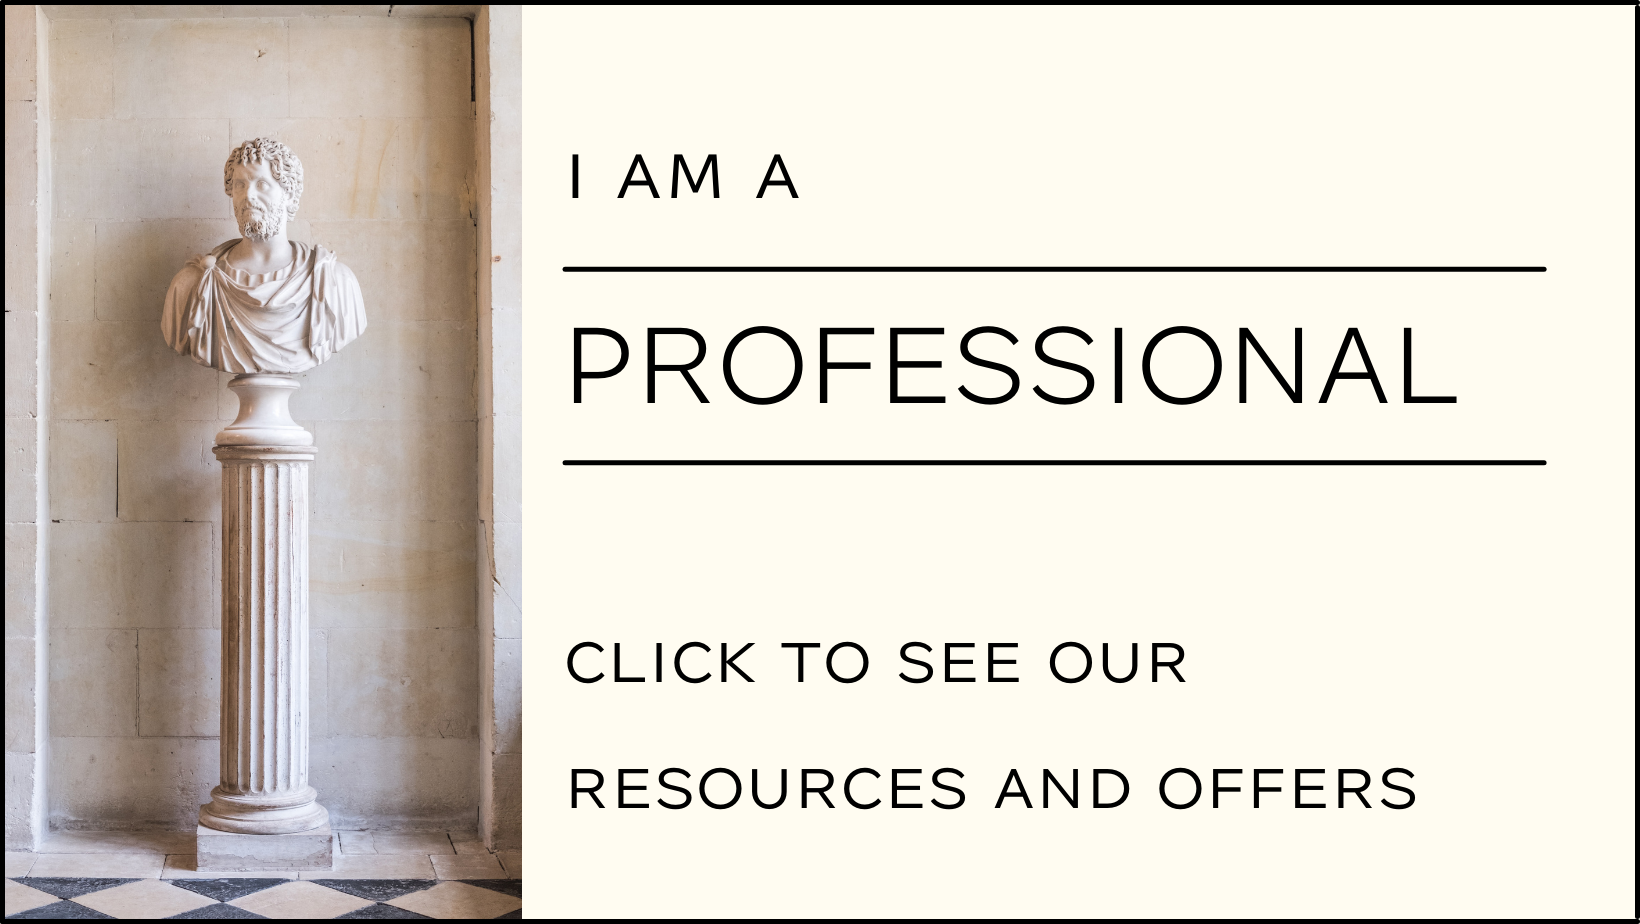 Writing Resources for Professionals